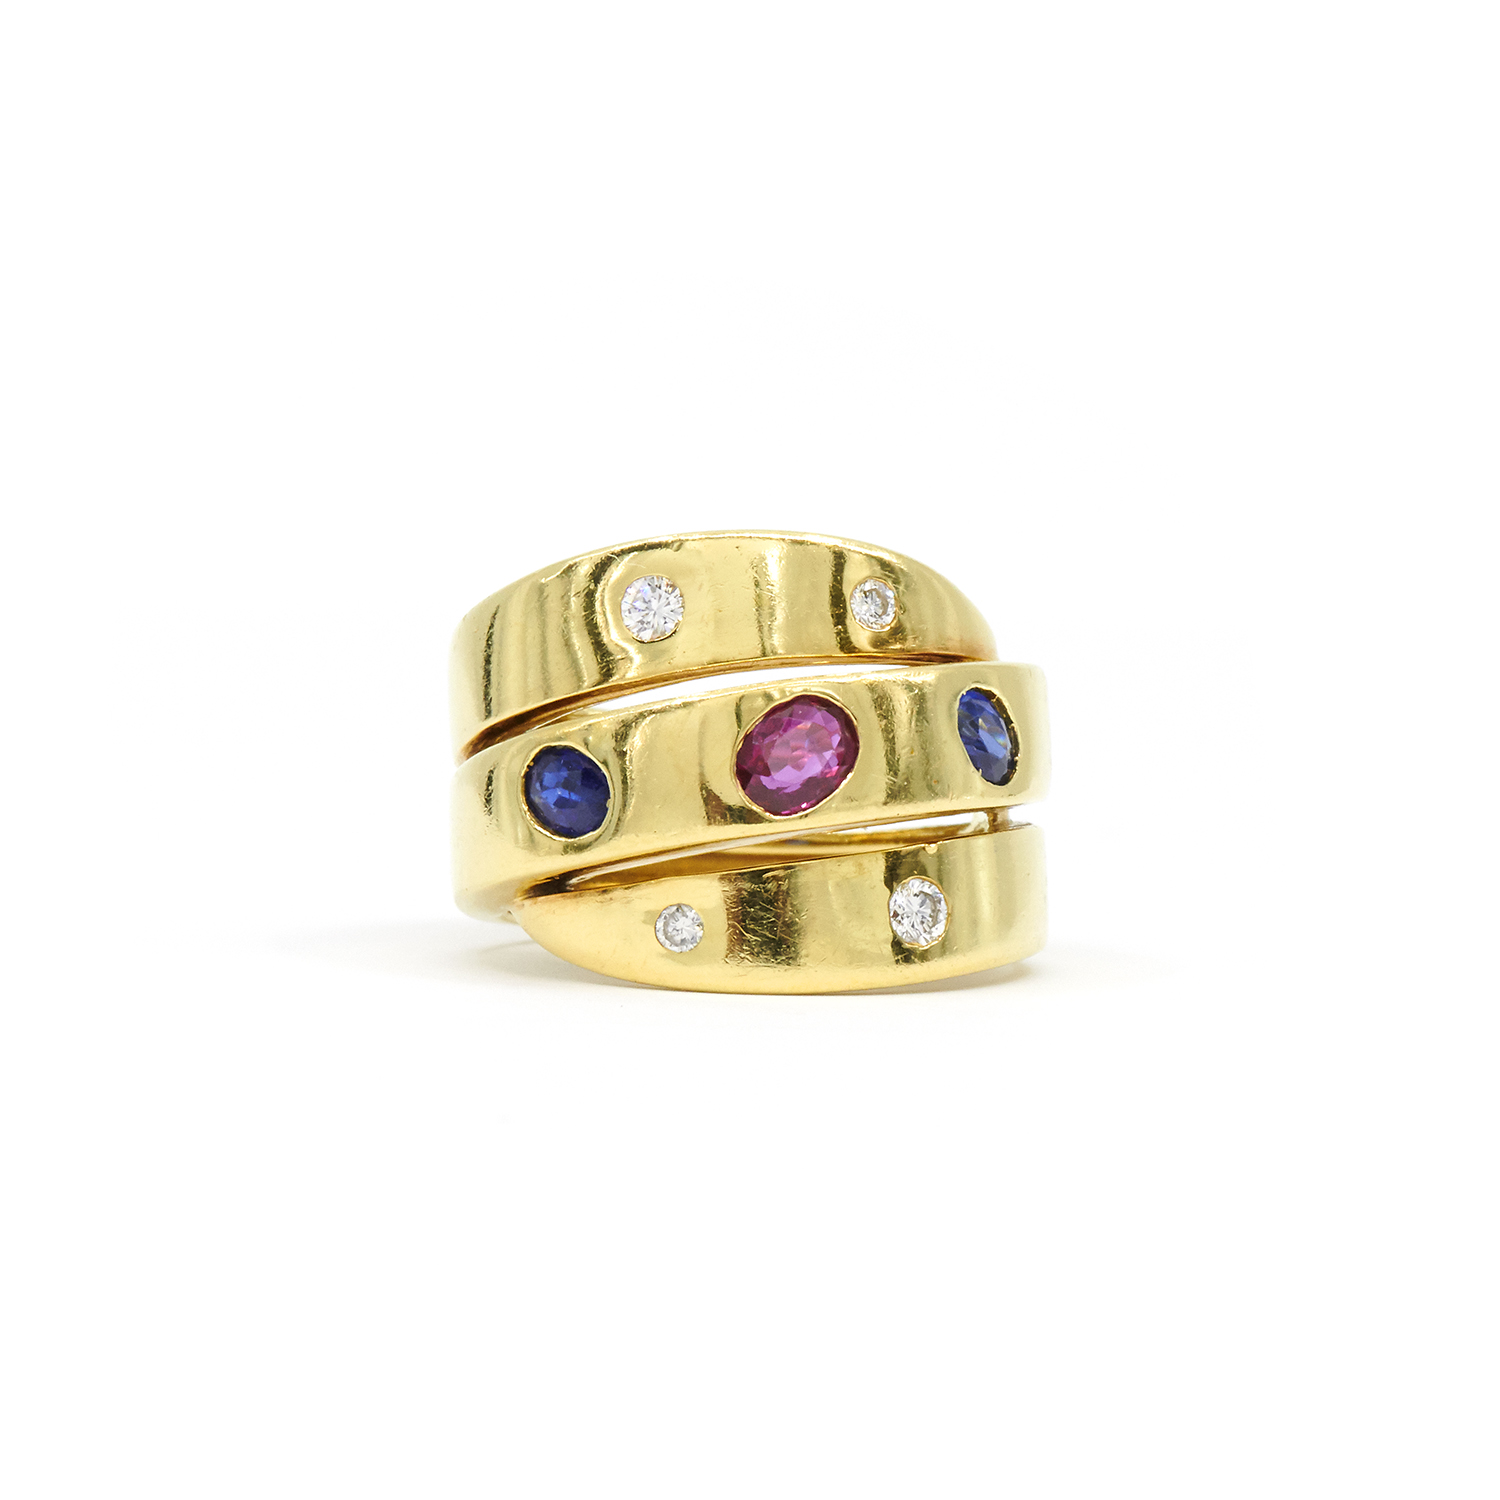 Ruby, Sapphire and Diamond Wrapped Ring by Van Cleef & Arpels Style R-39684-FL-0-0